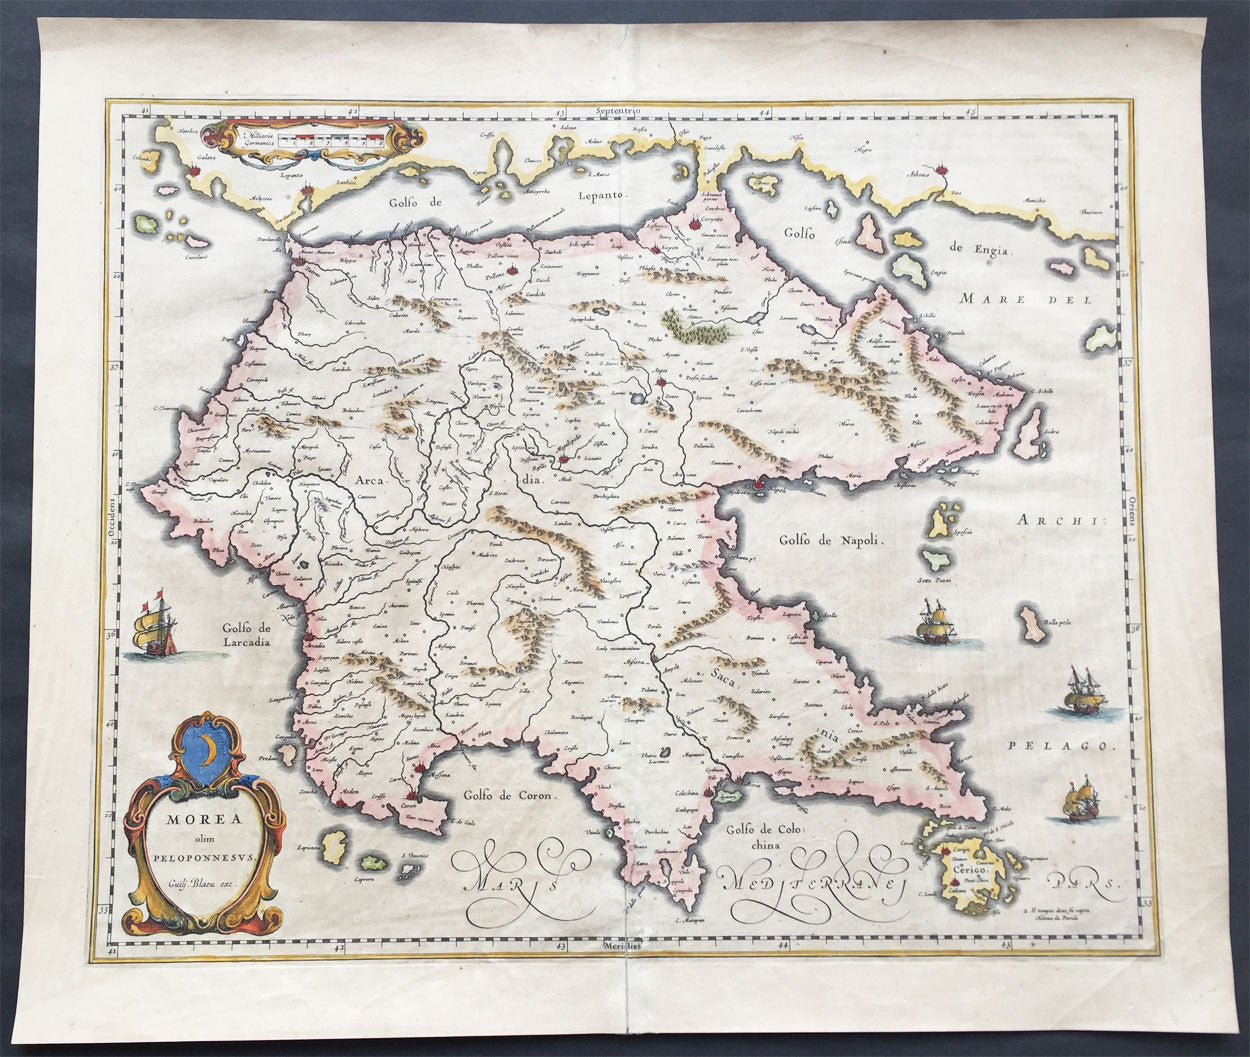 1640 Blaeu Antique Map of the Peloponnese or Morea Peninsula Greece